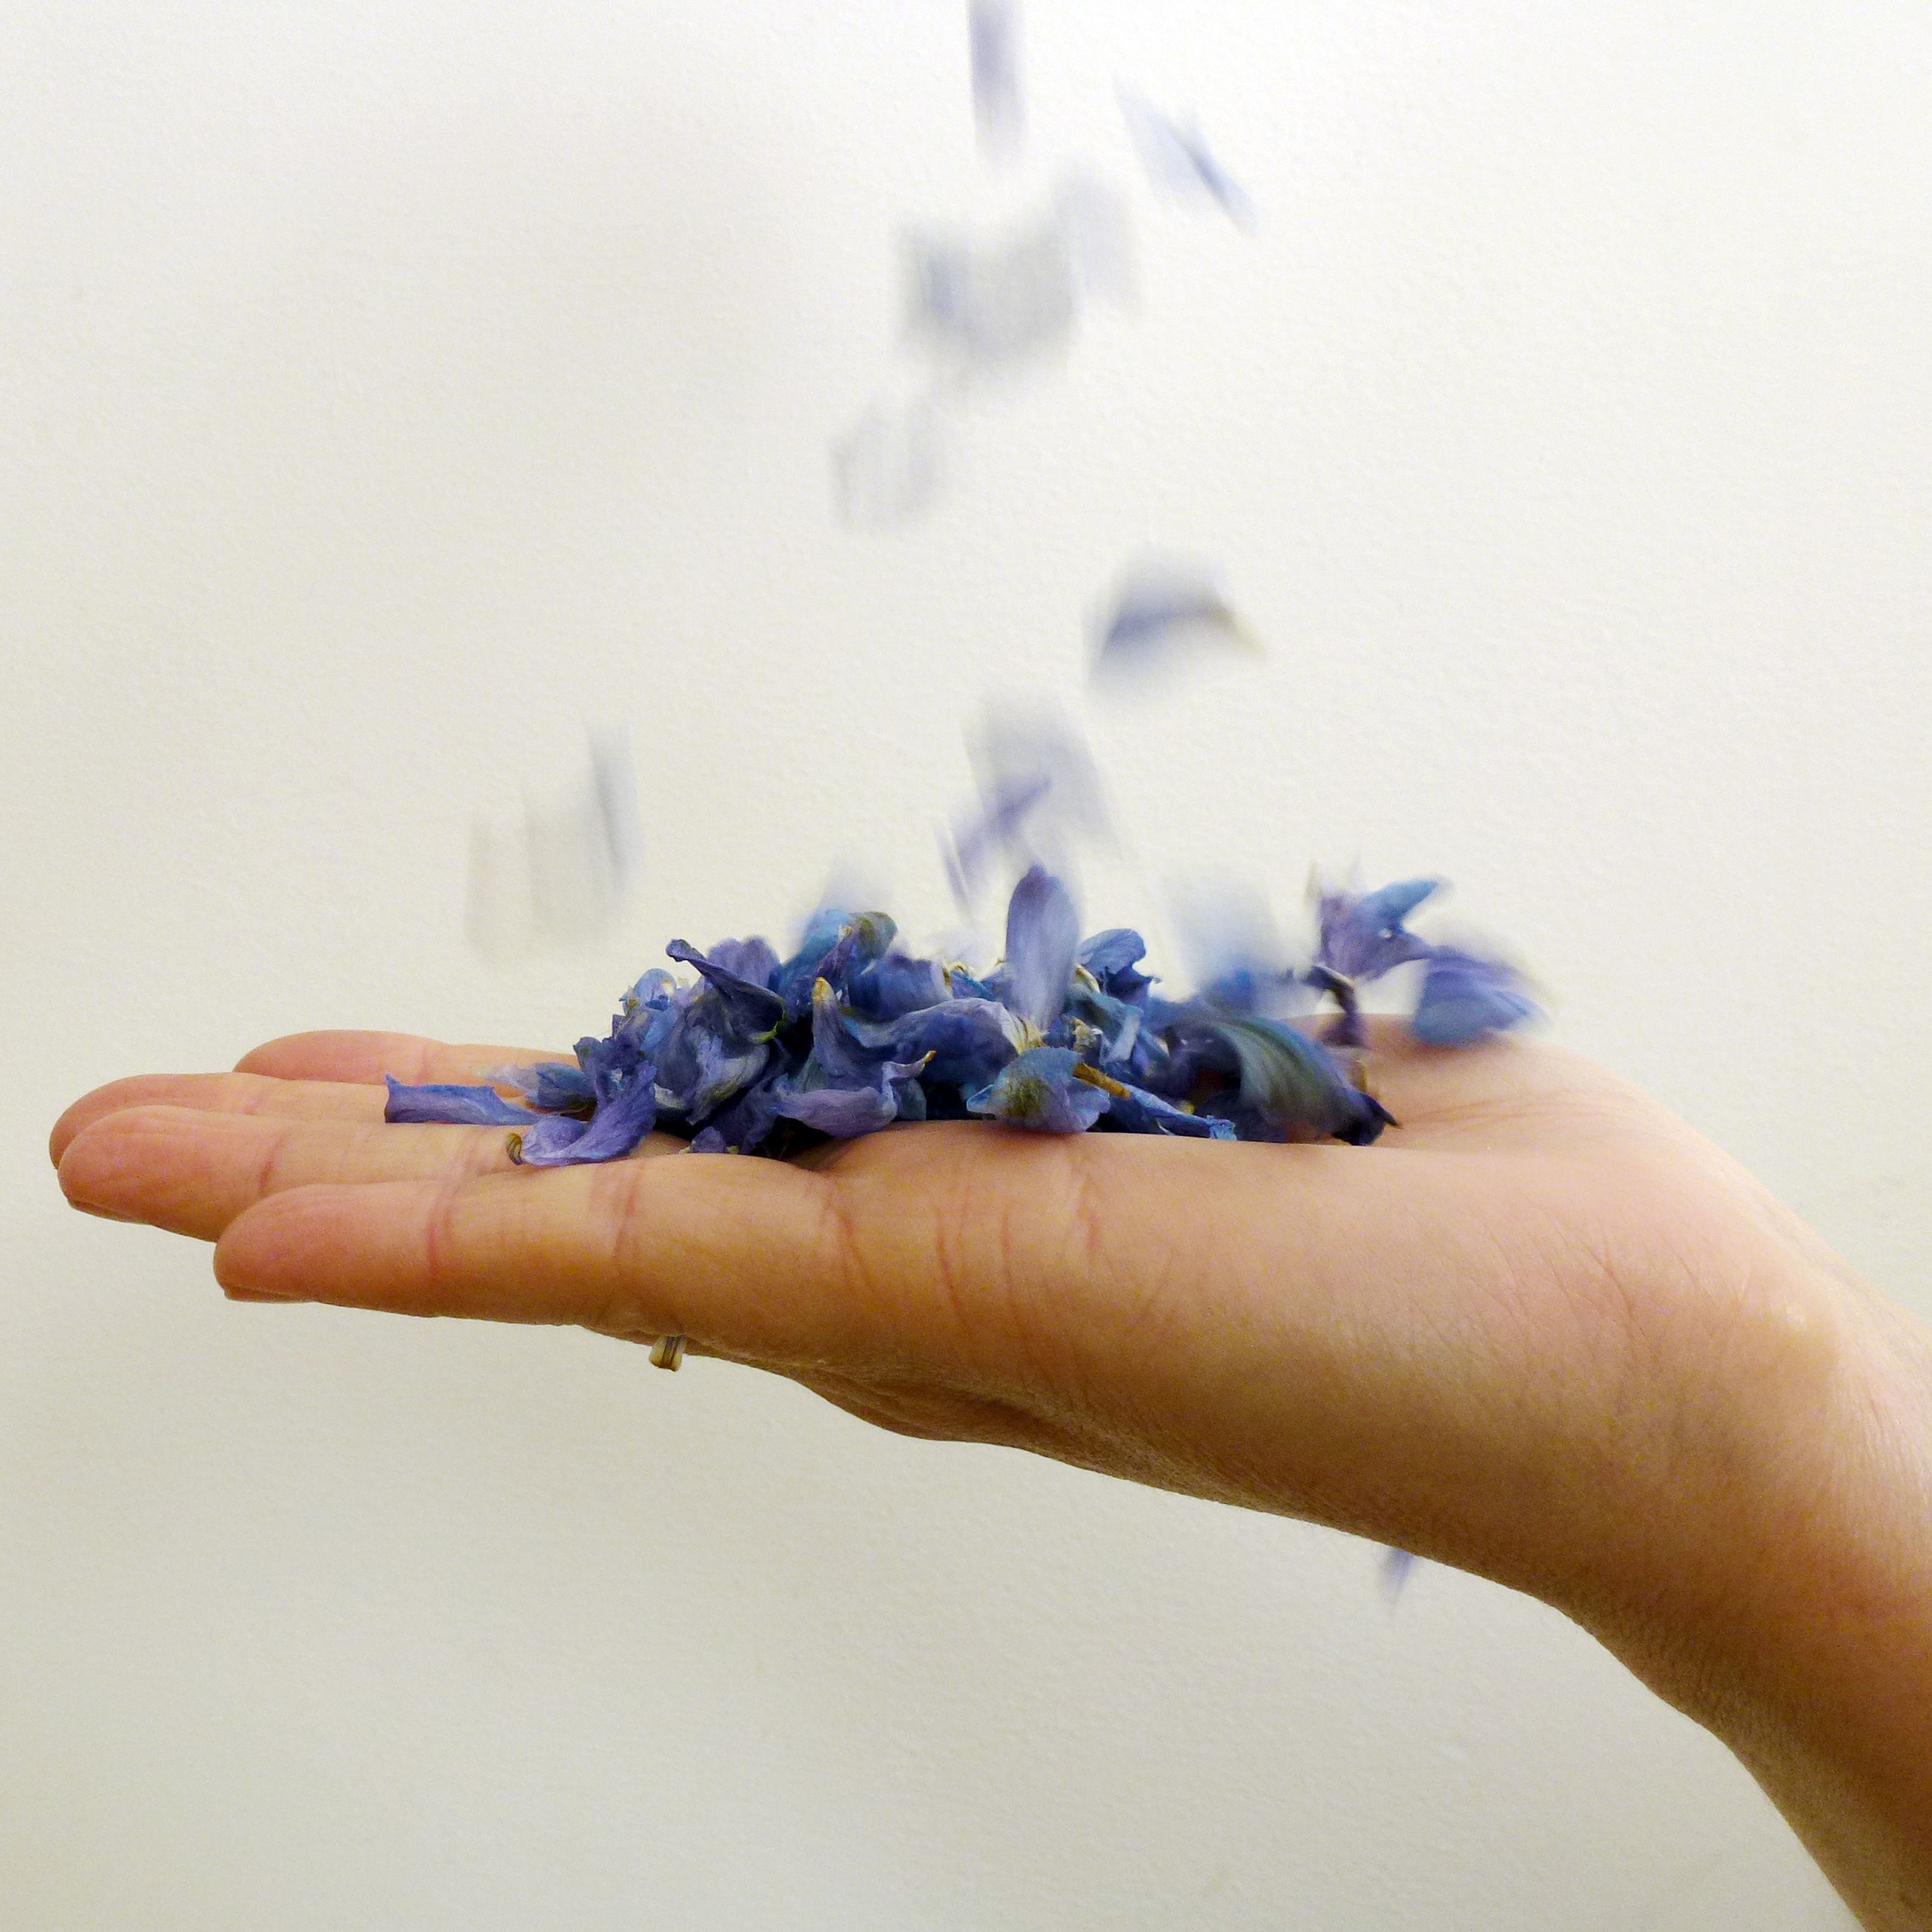 Why not use dried flower petals as confetti?! It's biodegradable and adds that element of rustic.